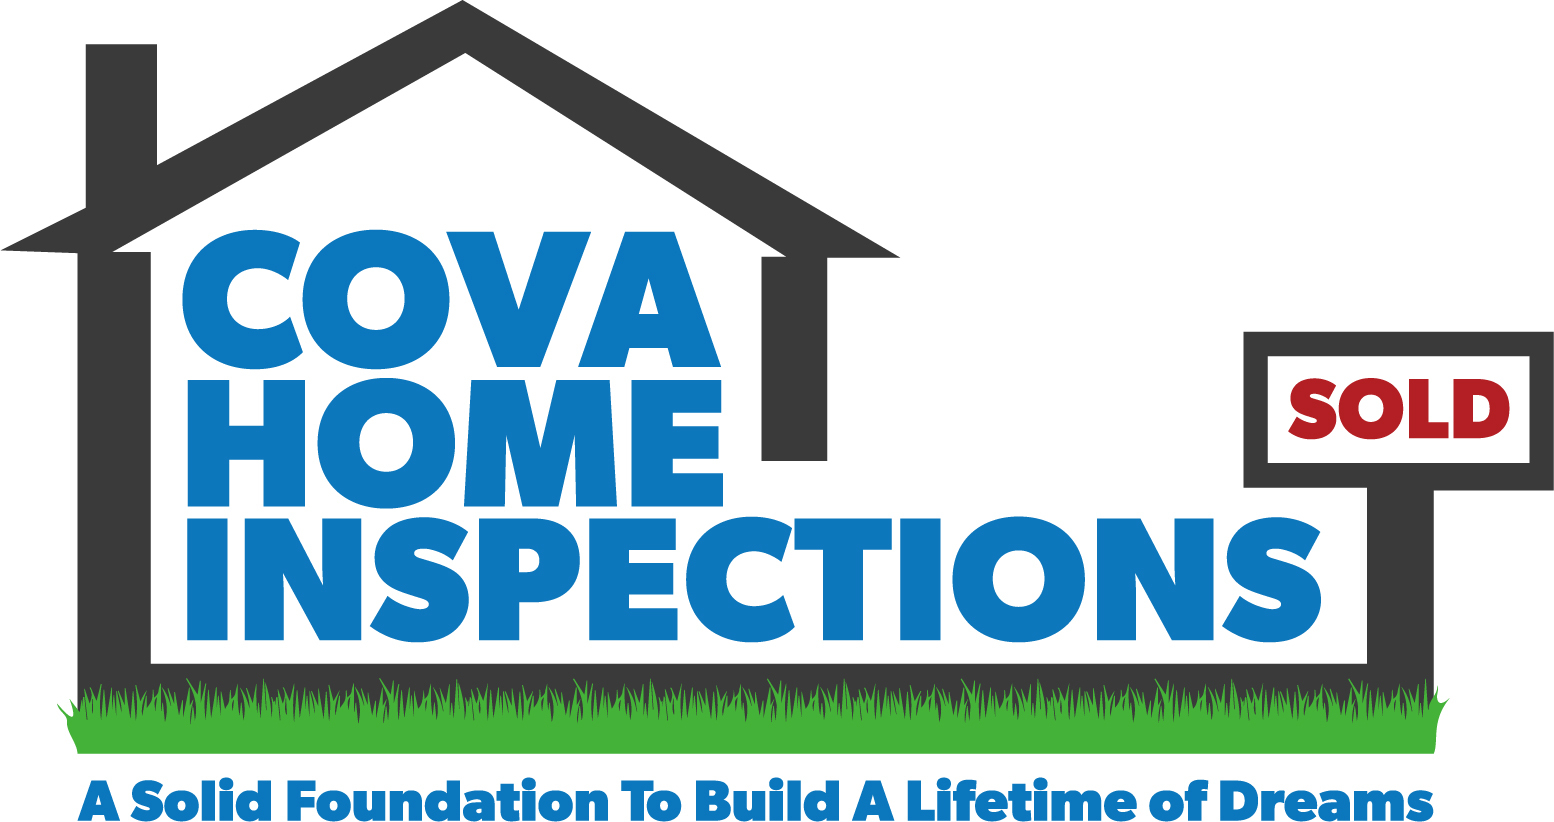 Cova home inspections